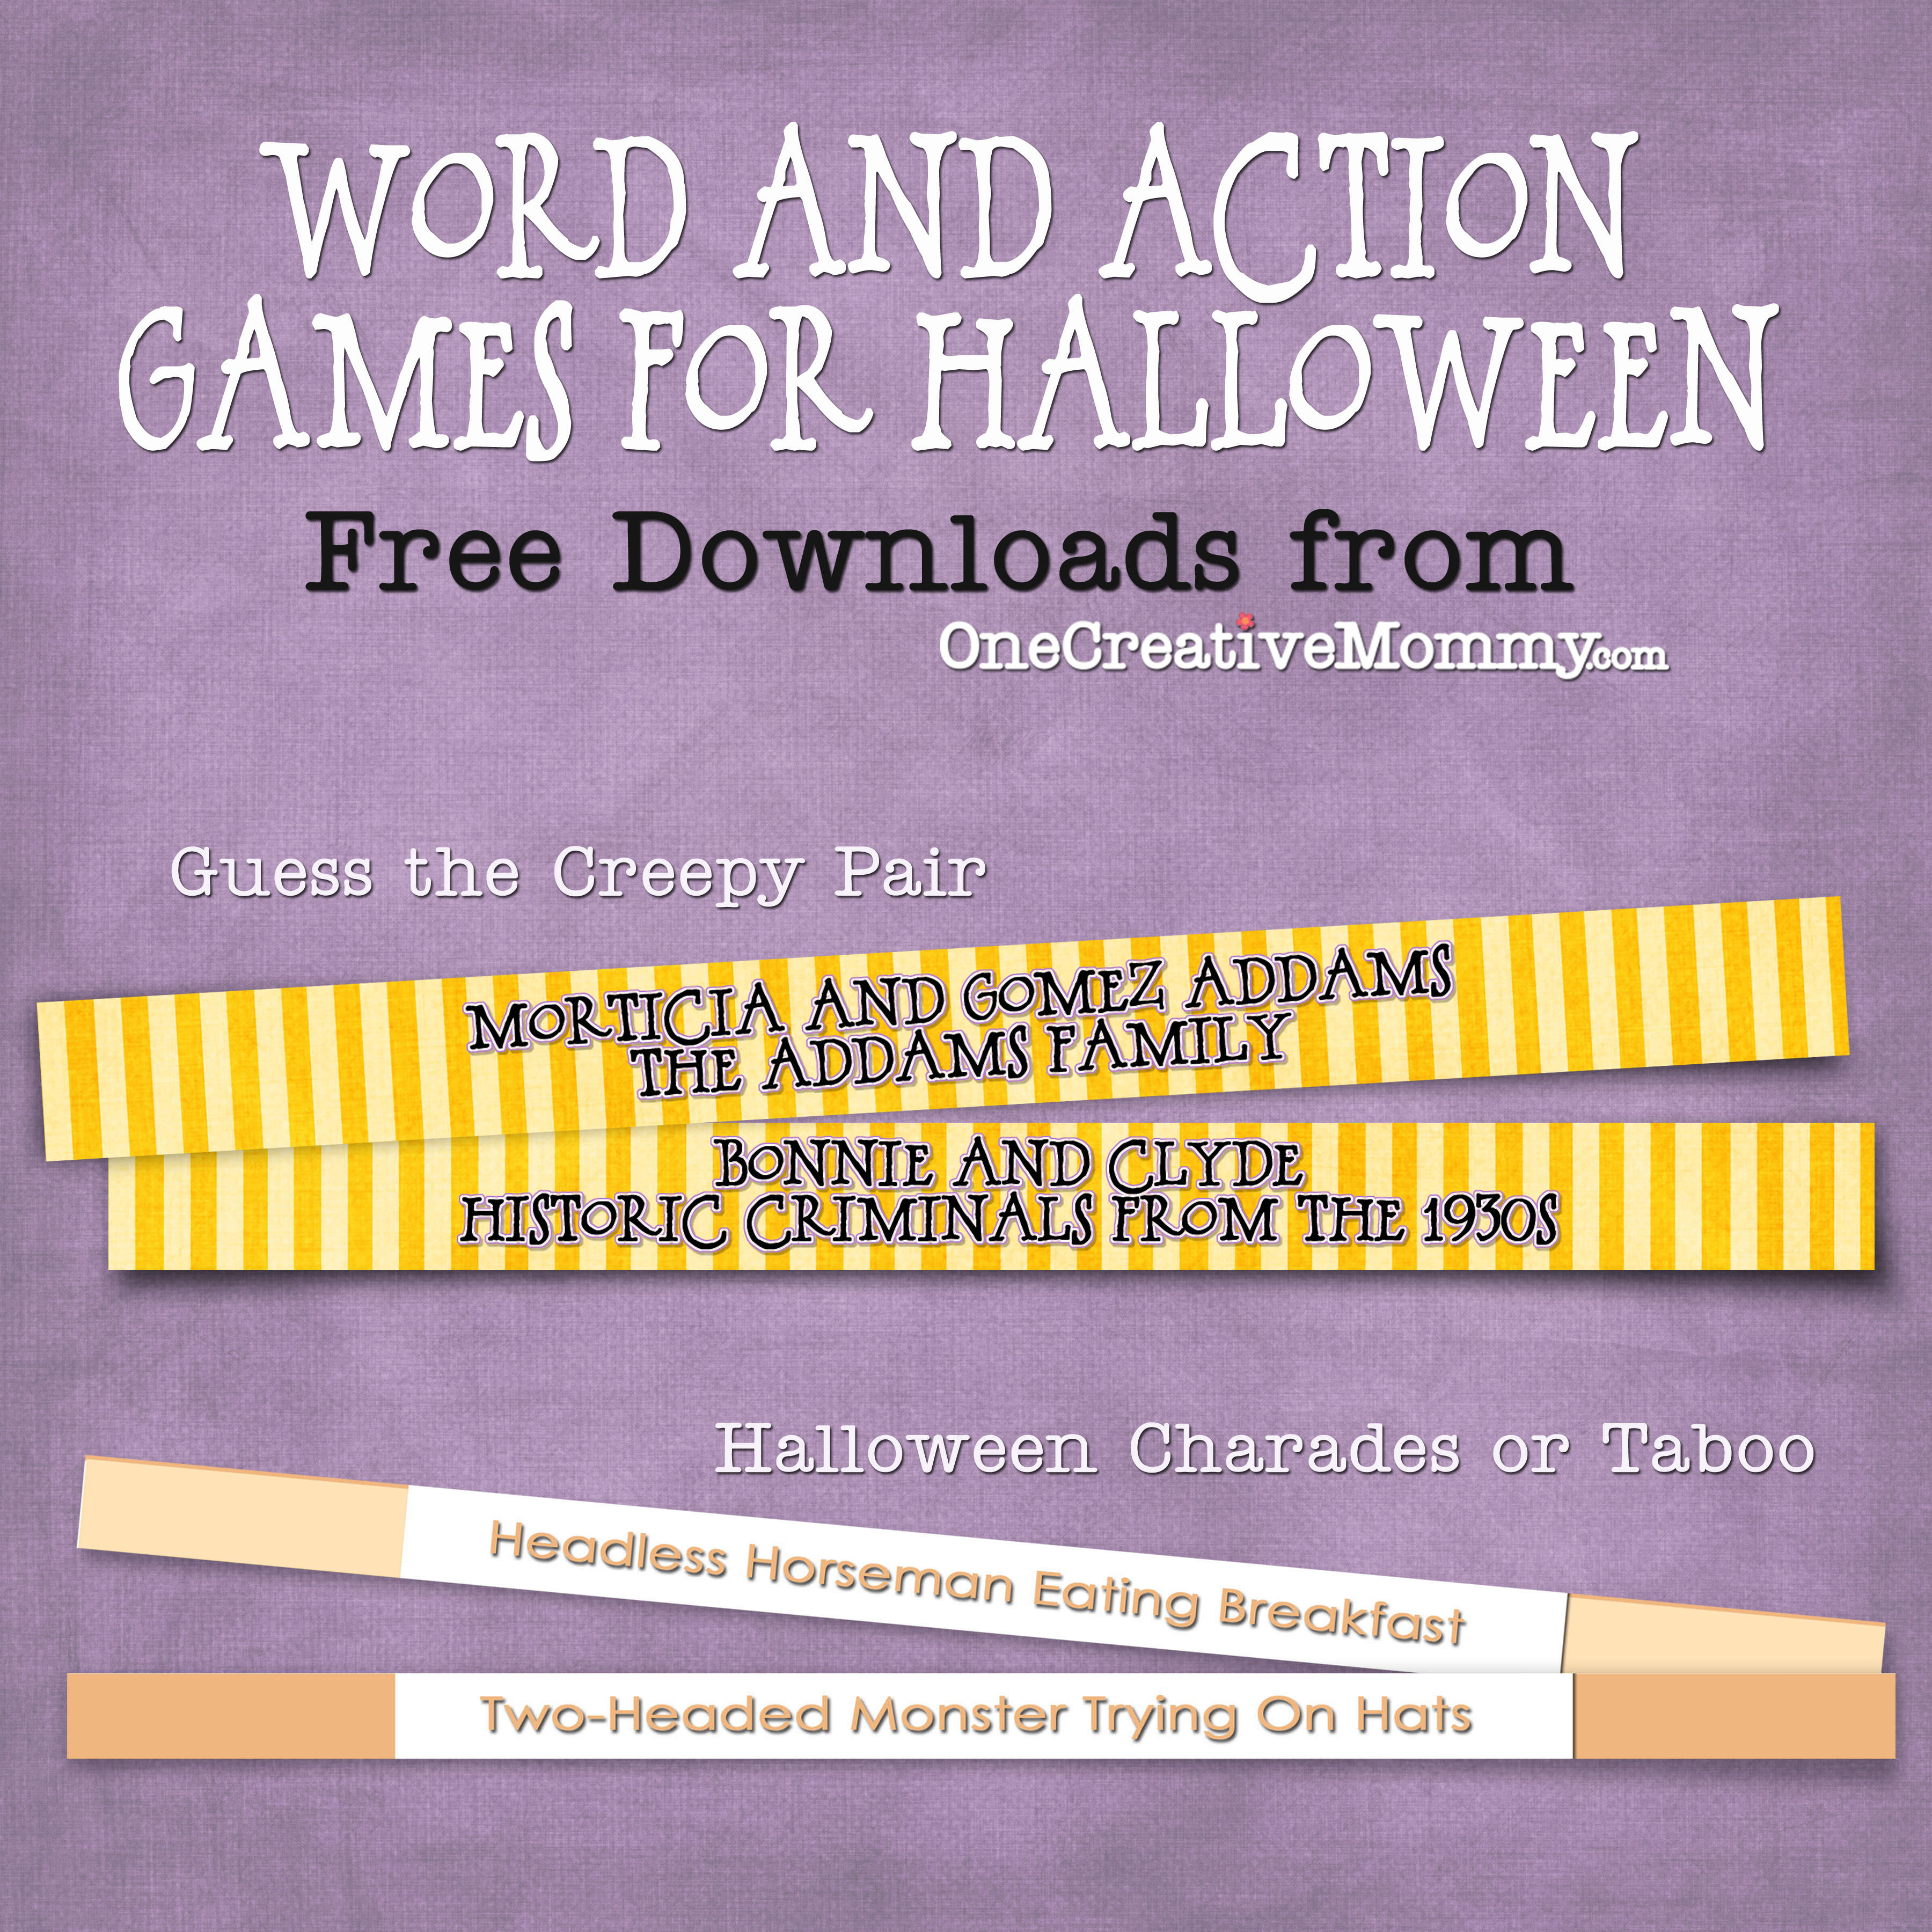 Halloween Party Games {Free Downloads} - Onecreativemommy - Free Printable Halloween Party Games